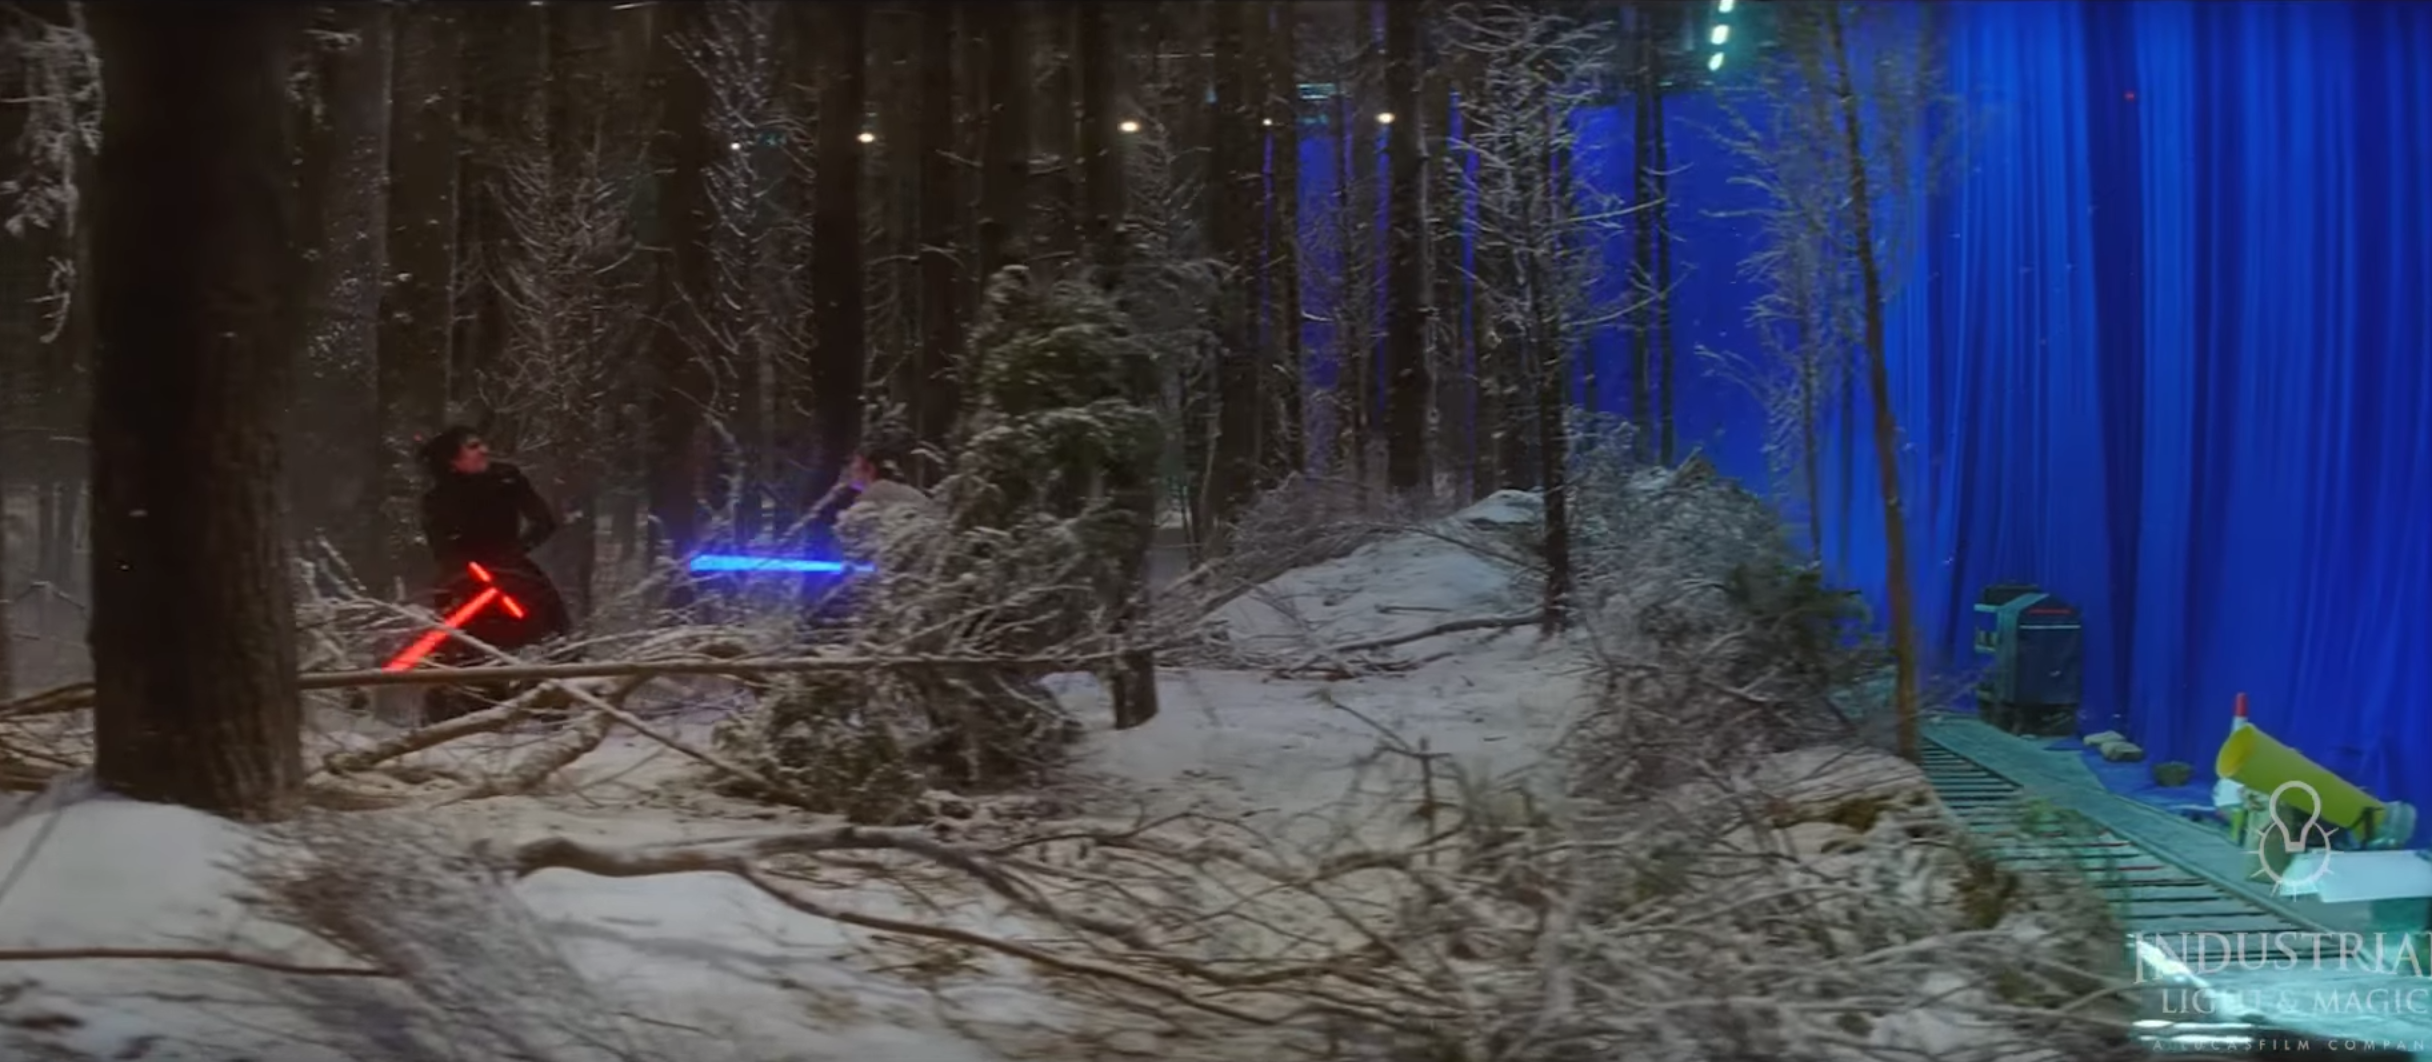 Behind the scene – star wars VII The Force Awakens